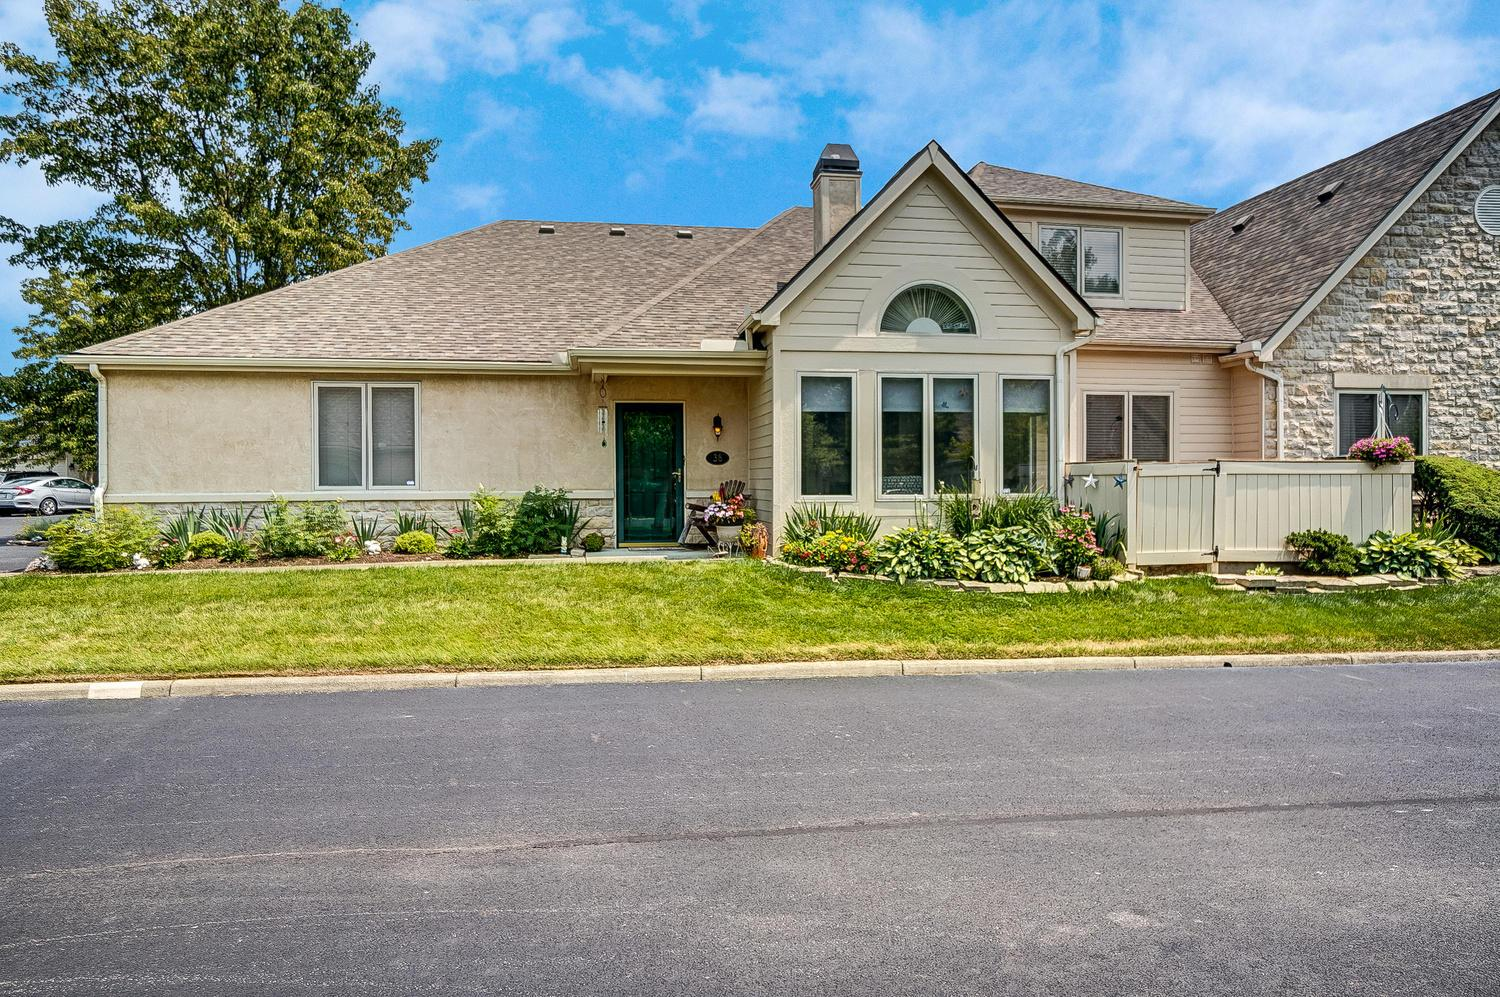 Welcome home to 38 Ironclad Dr!